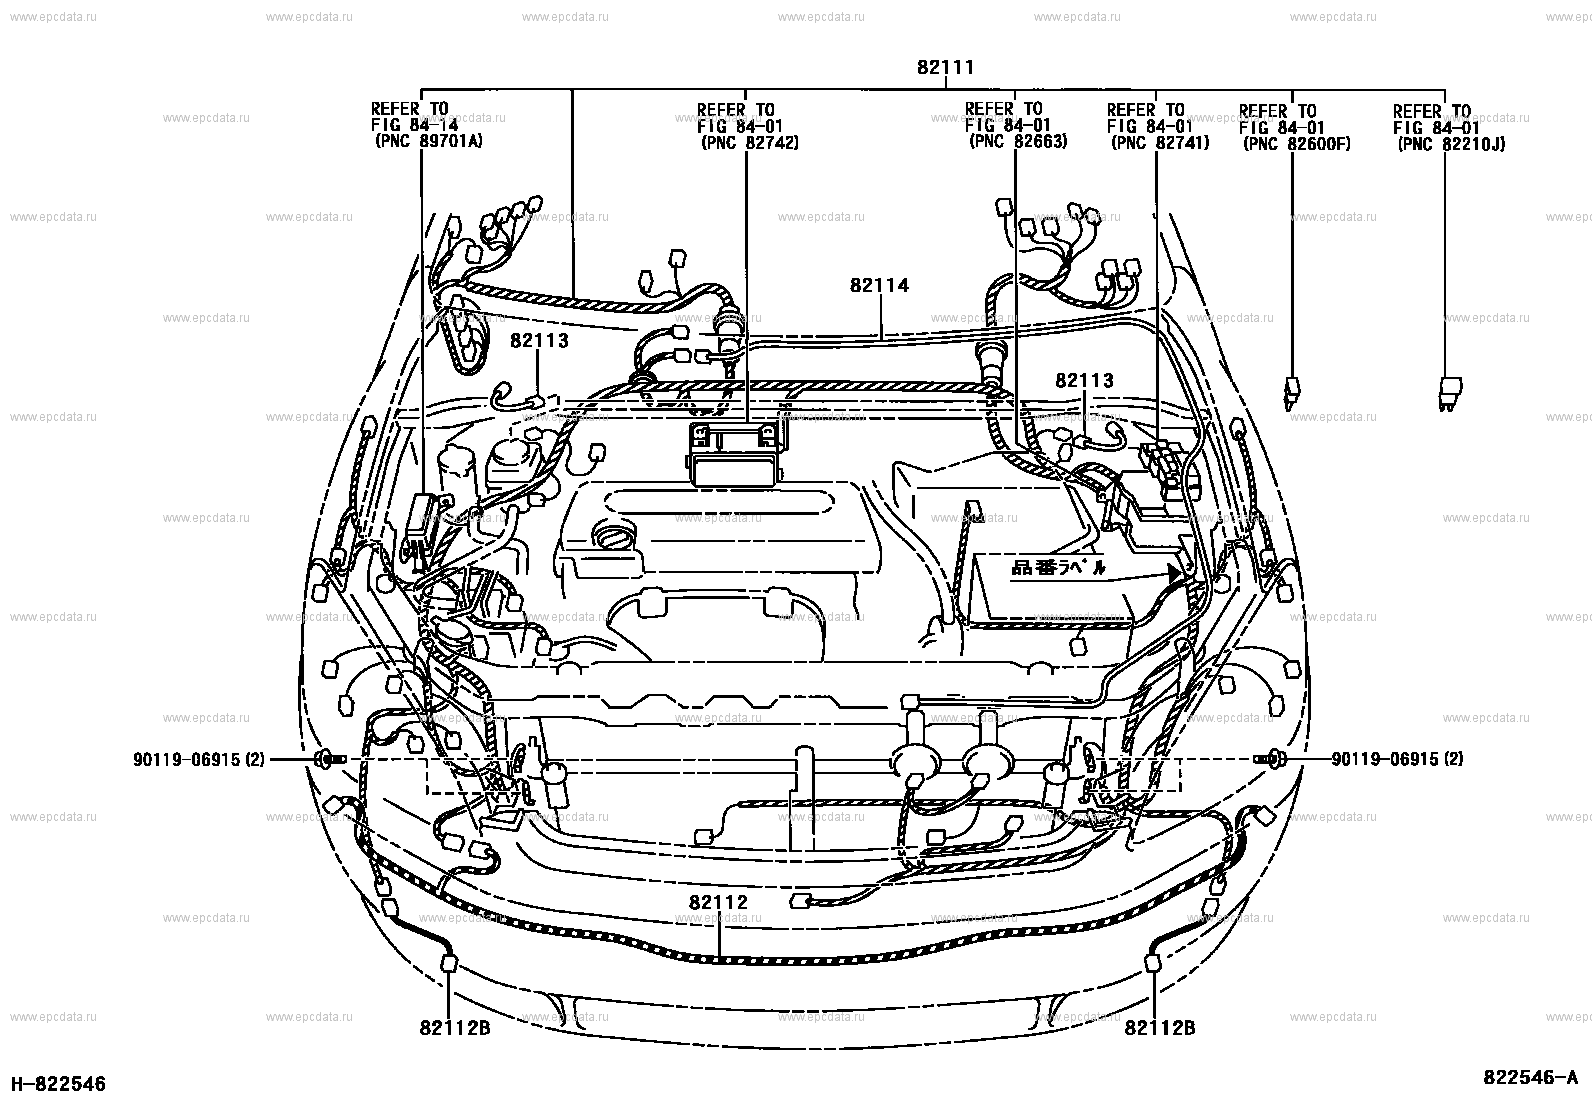 Wiring Diagram For Toyota Ipsum Engine